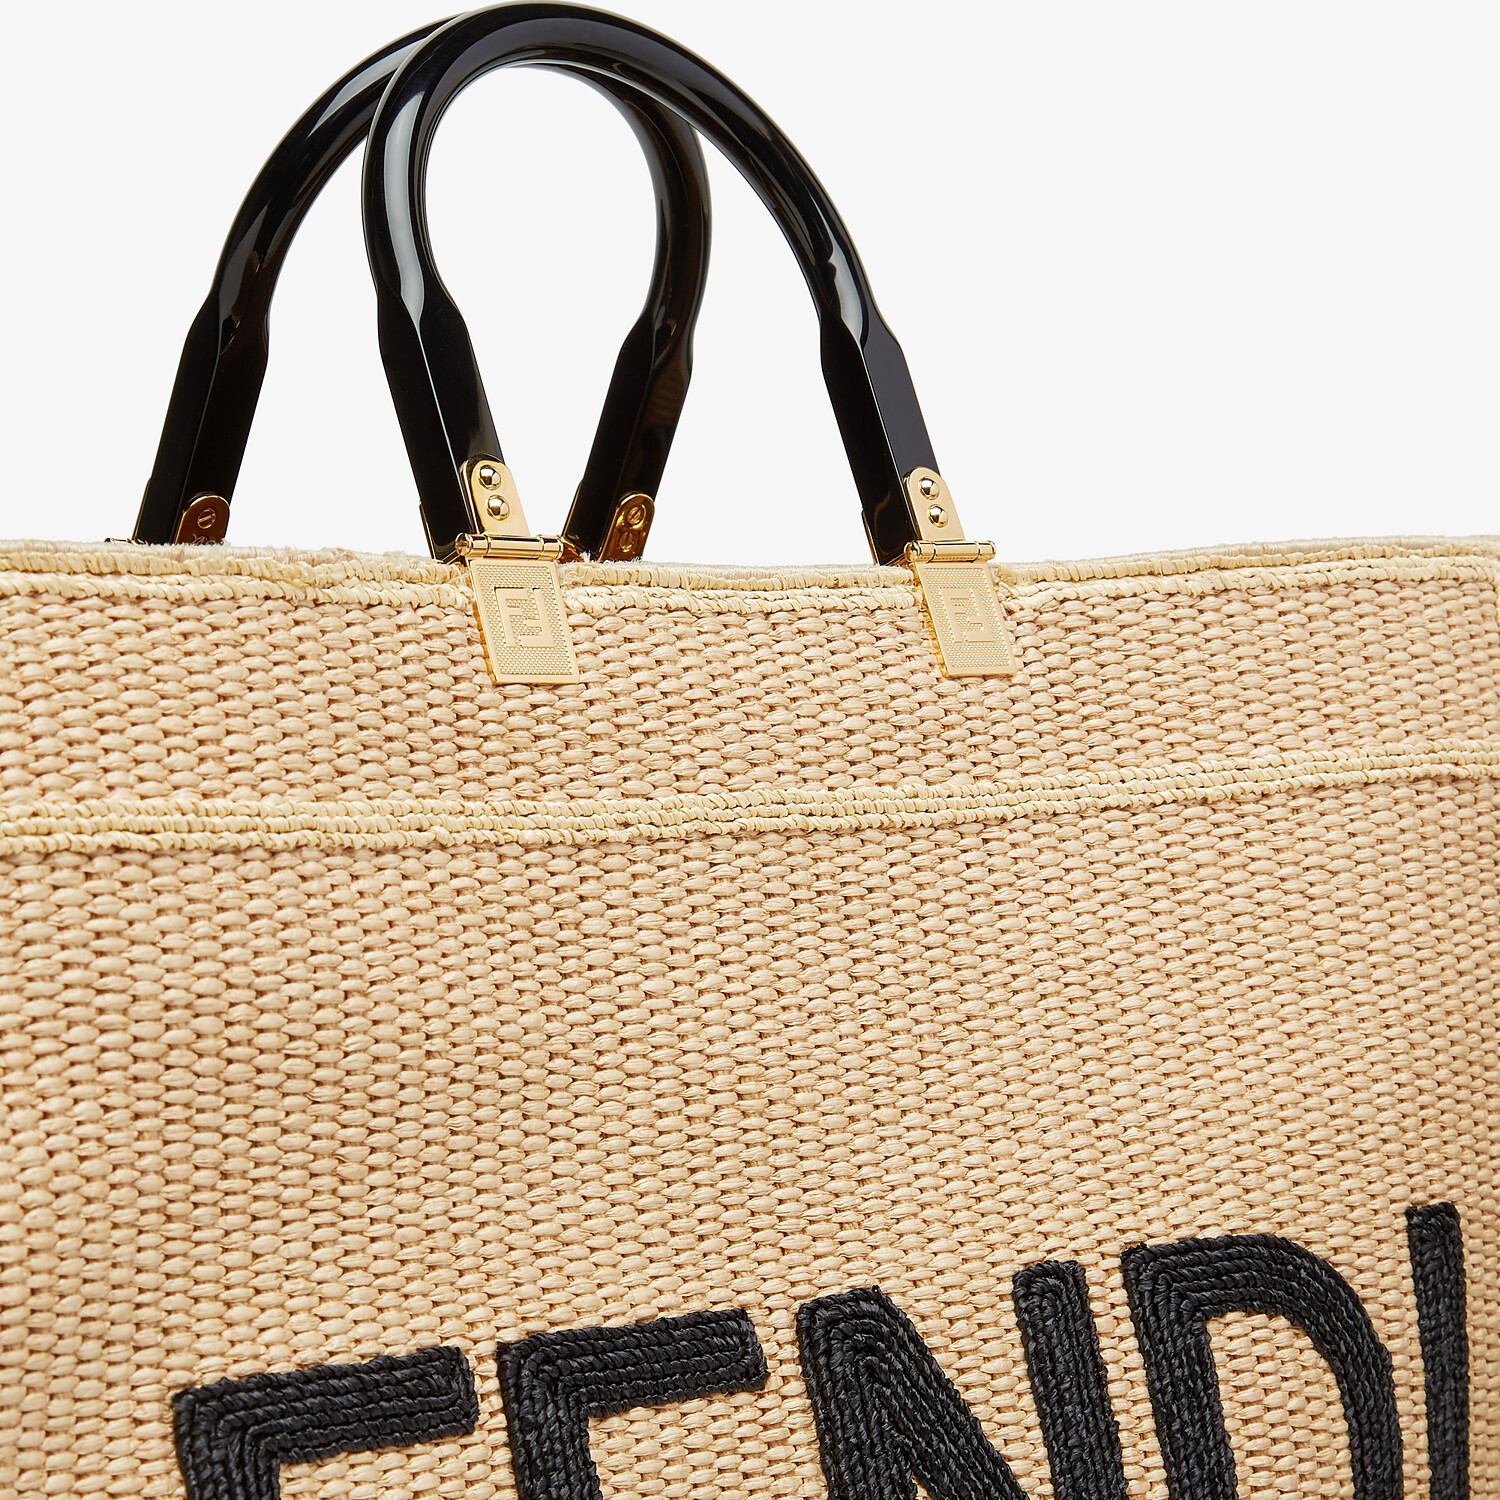 FENDI FENDI SUNSHINE LARGE - Woven straw shopper - view 6 detail